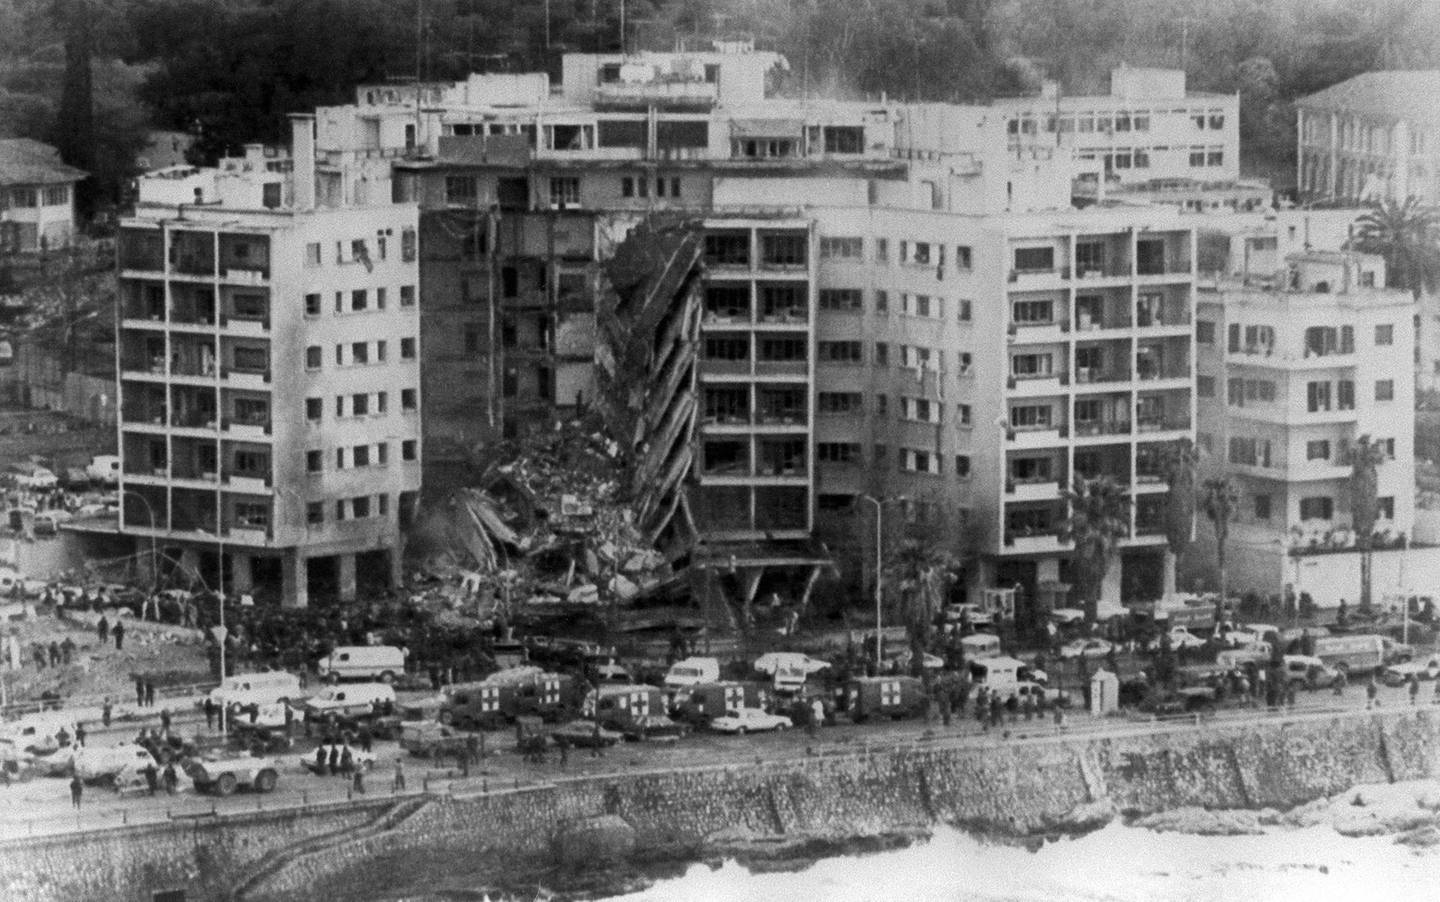 Aerial view of the United States embassy in Beirut, 18 April 1983, after a bomb destroyed part of the building. The whole front center section of the building collapsed from the blast. (Photo by US NAVY / AFP)